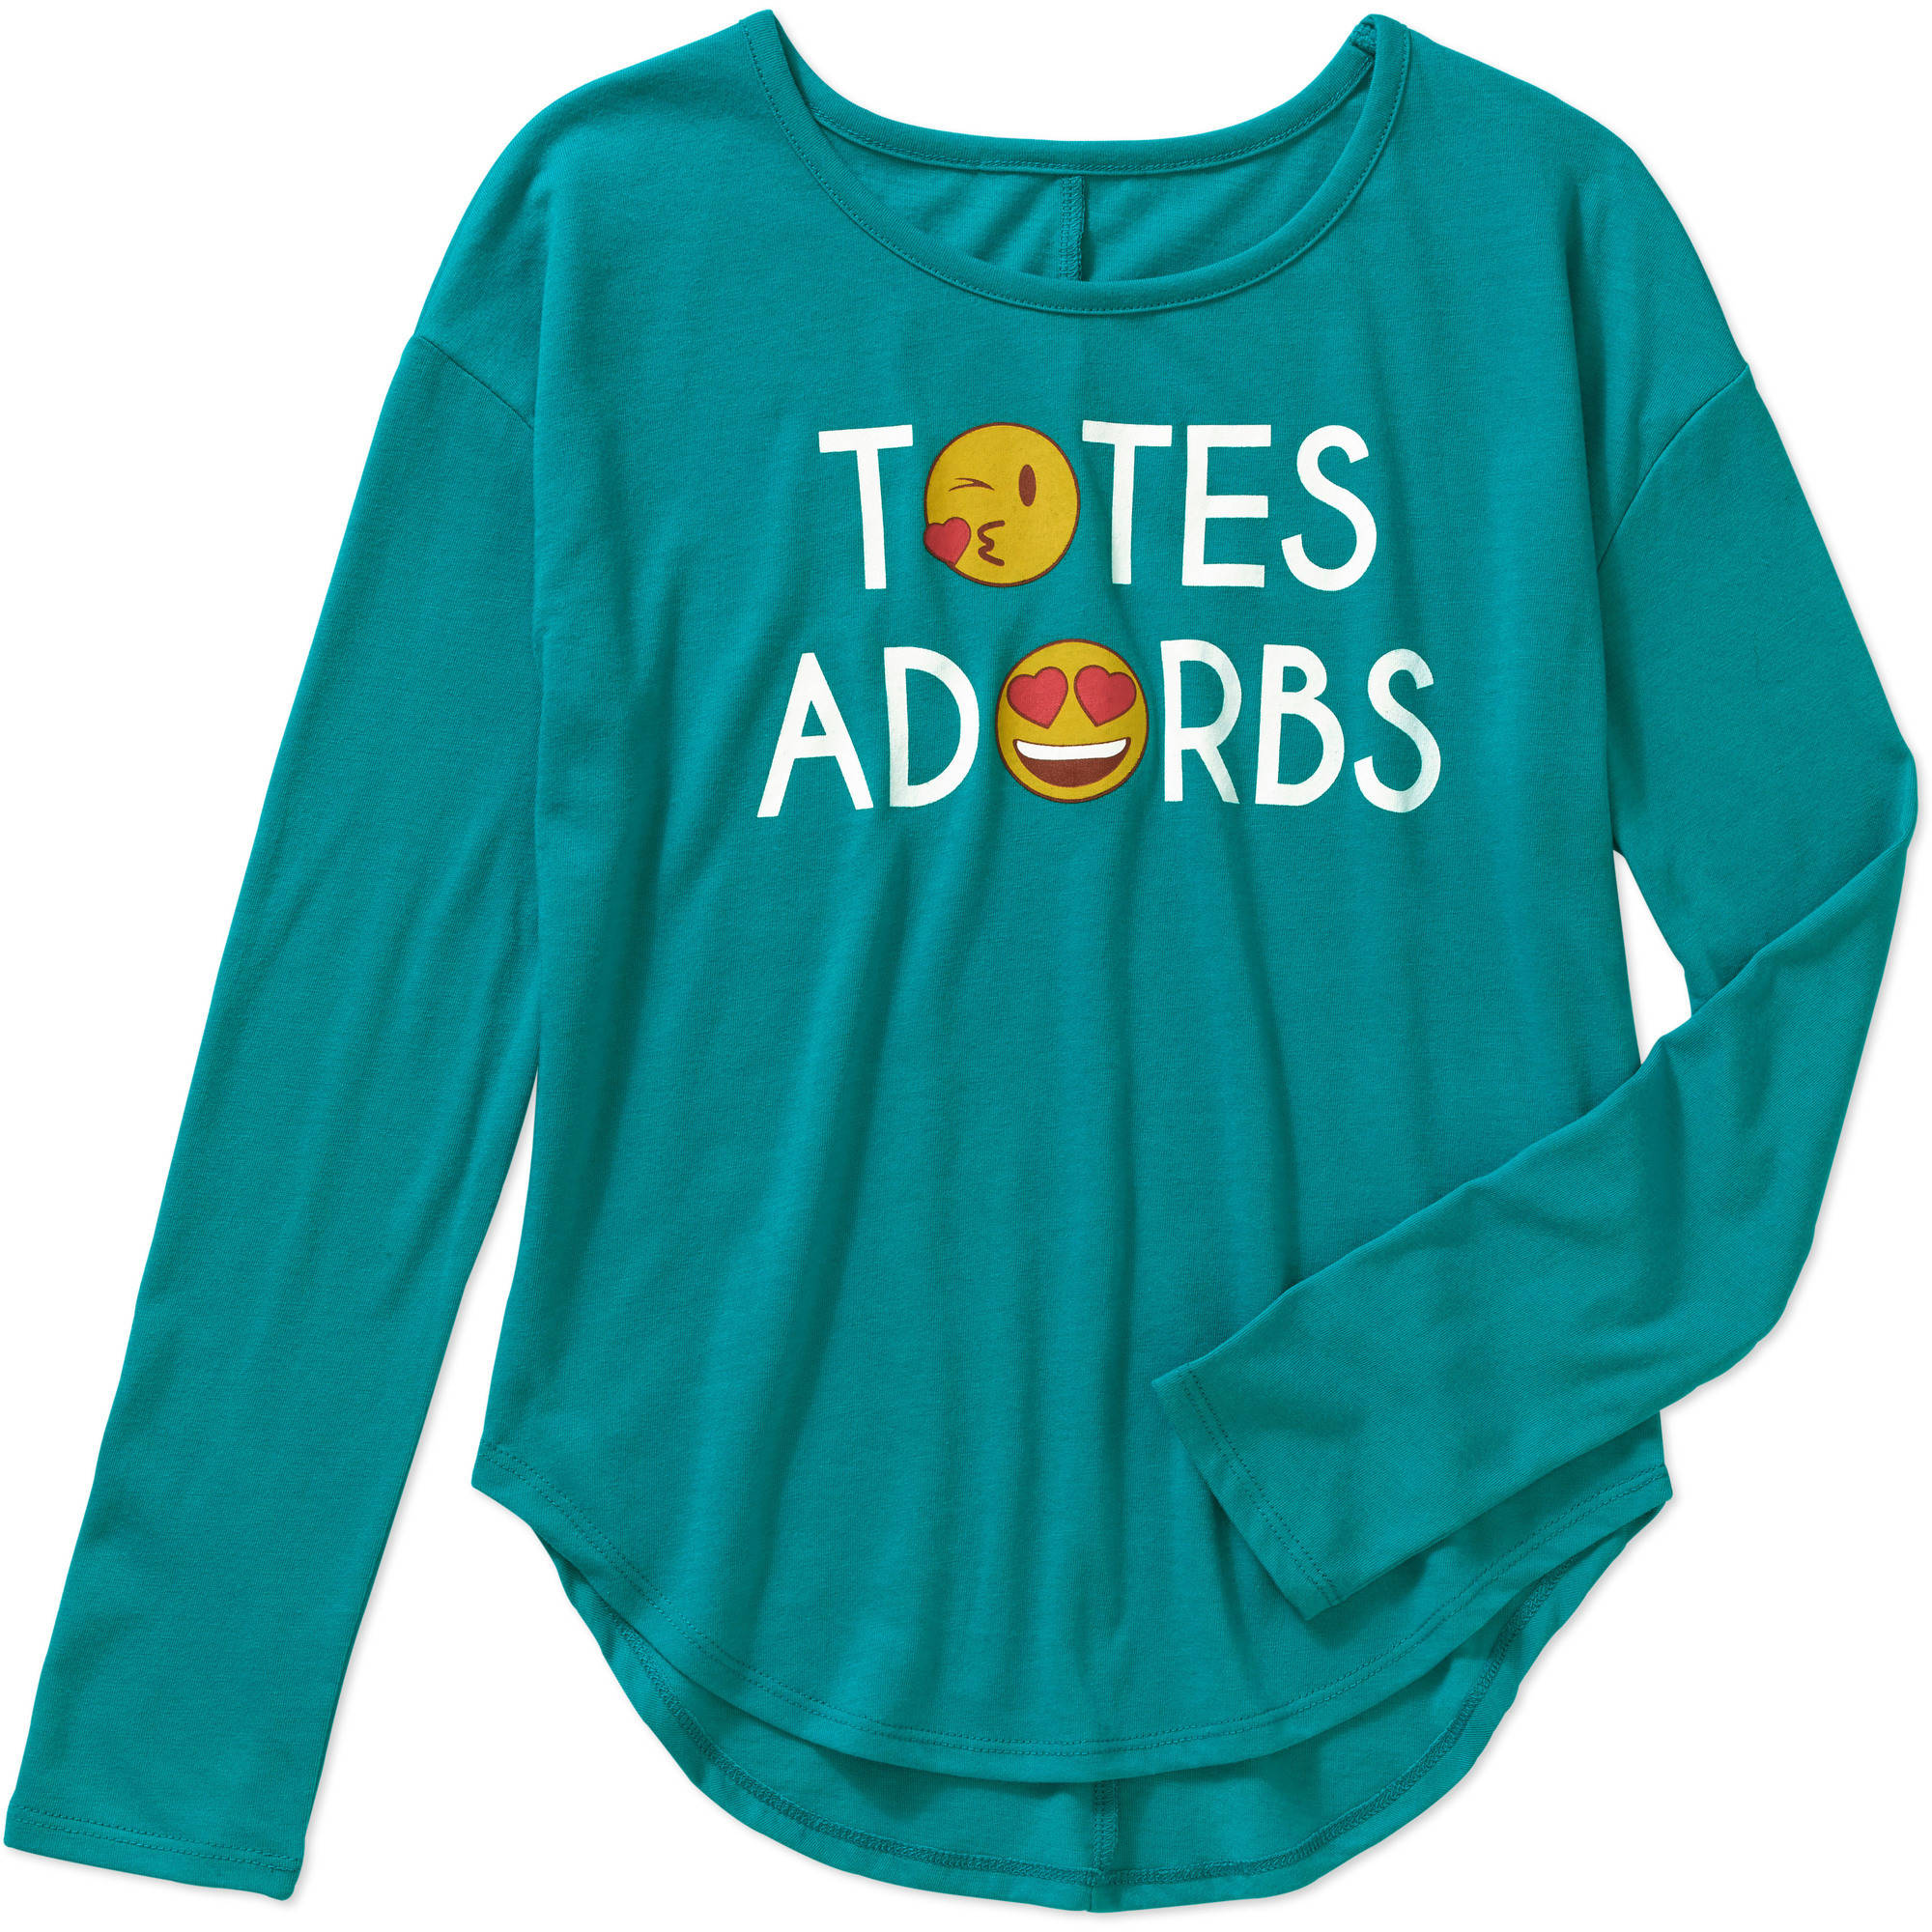 Gems And Jets Girls' Long Sleeve Crew Neck Totes Adorbs Graphic Tee